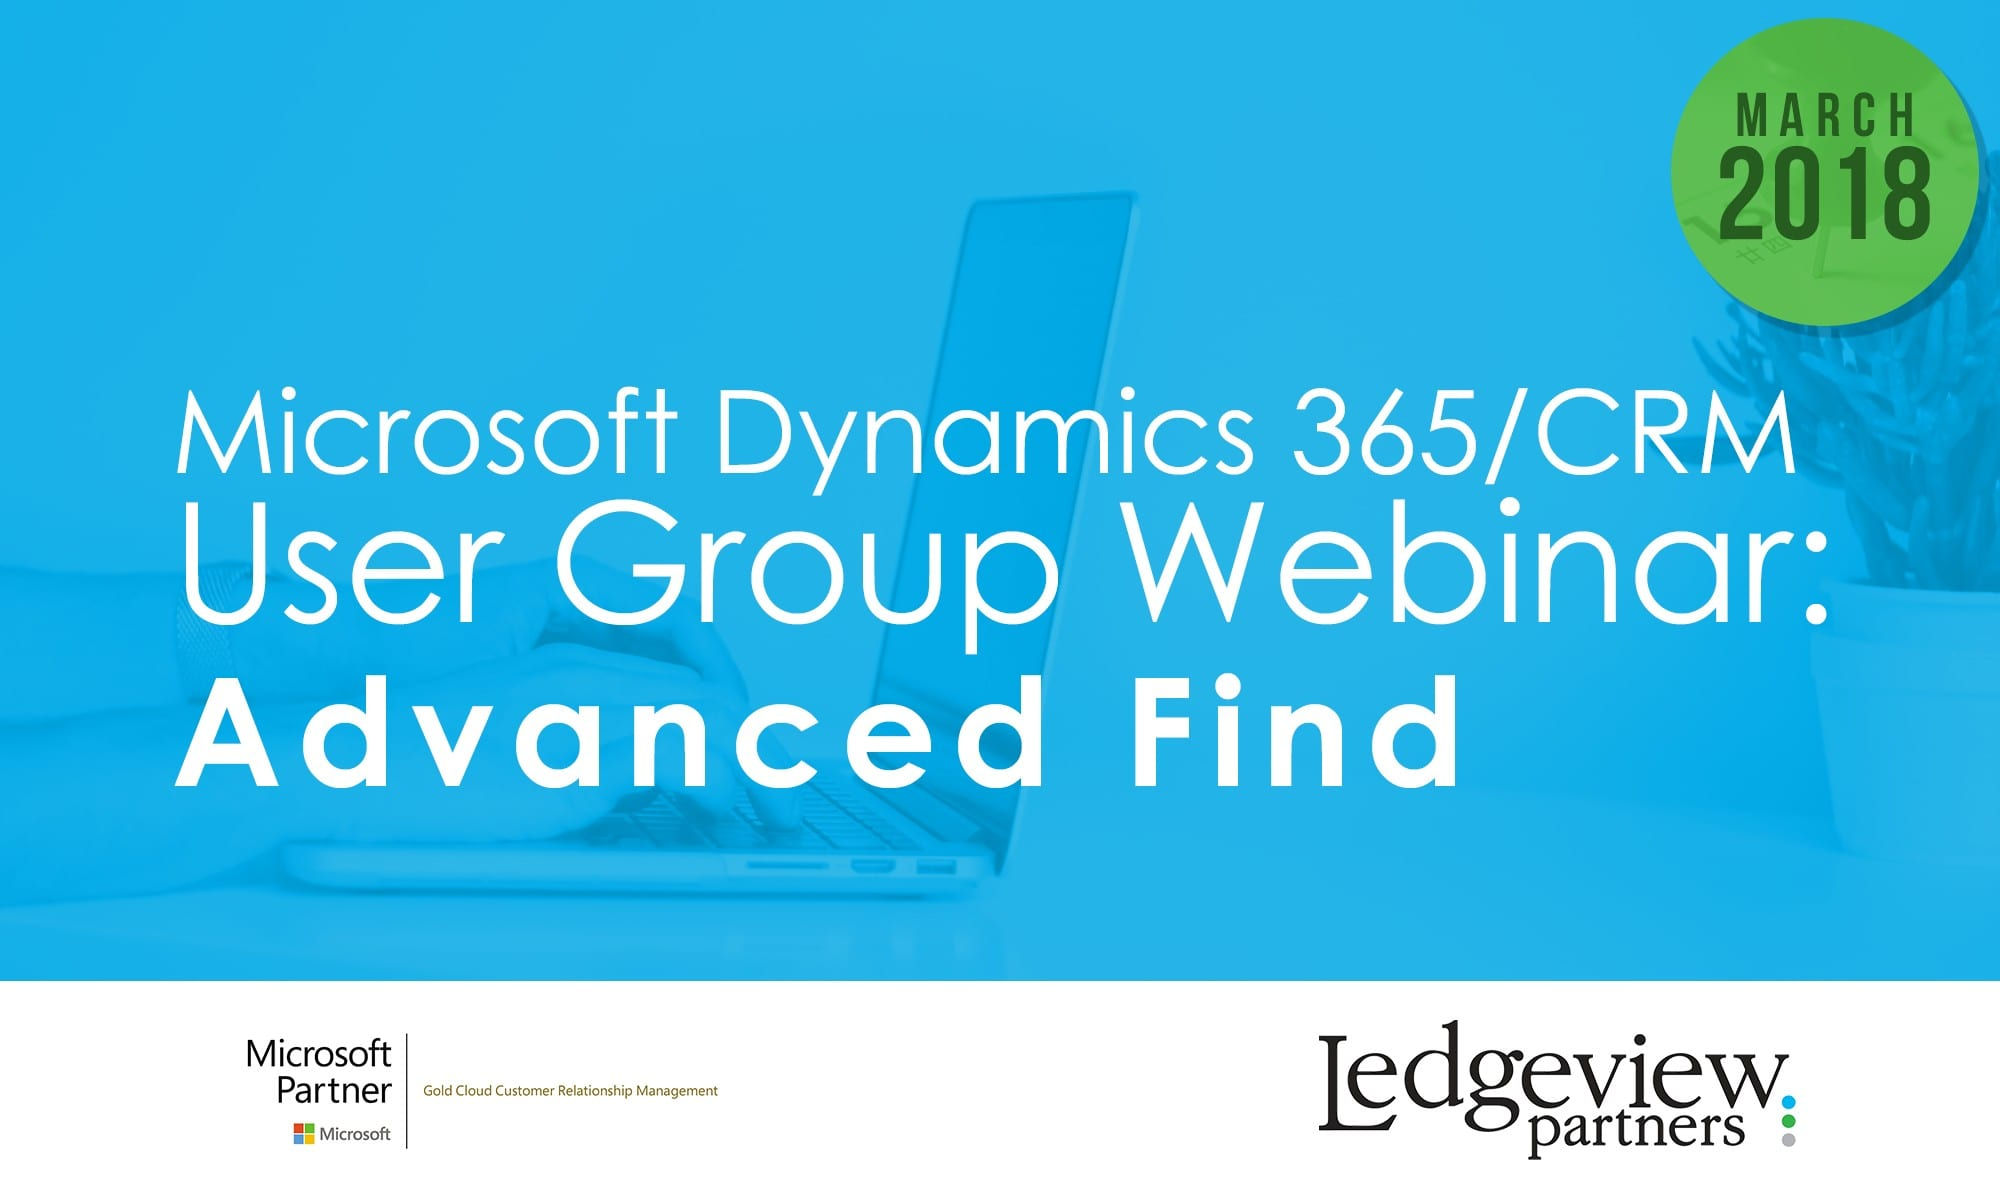 Microsoft Dynamics 365/CRM User Group - Ledgeview Partners